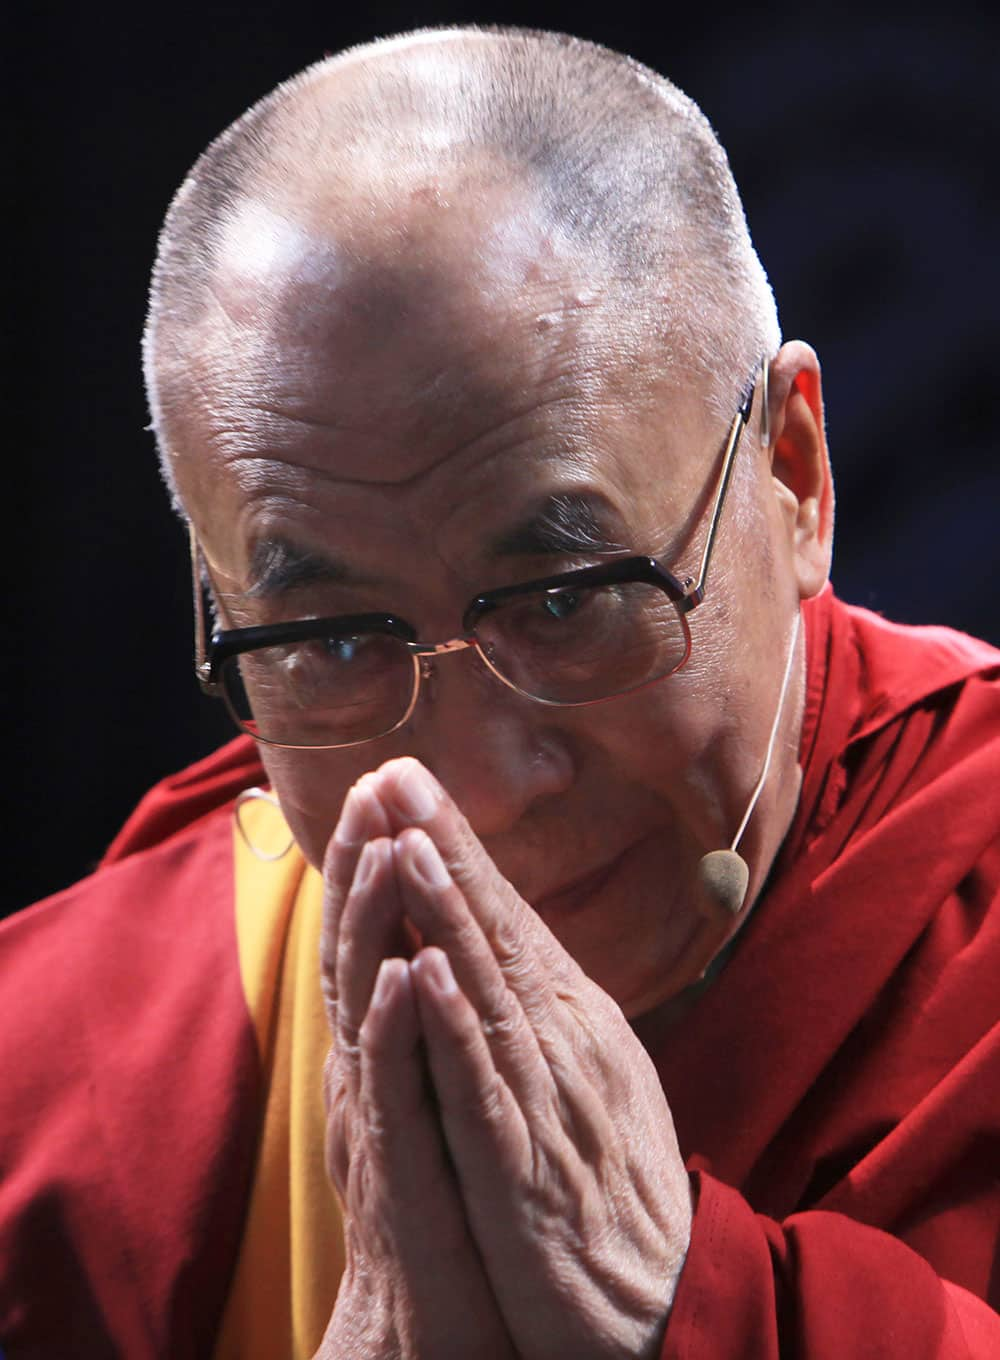 Tibet`s spiritual leader the Dalai Lama offers a greeting as he arrives during a ceremony at a theater in Mexico City.